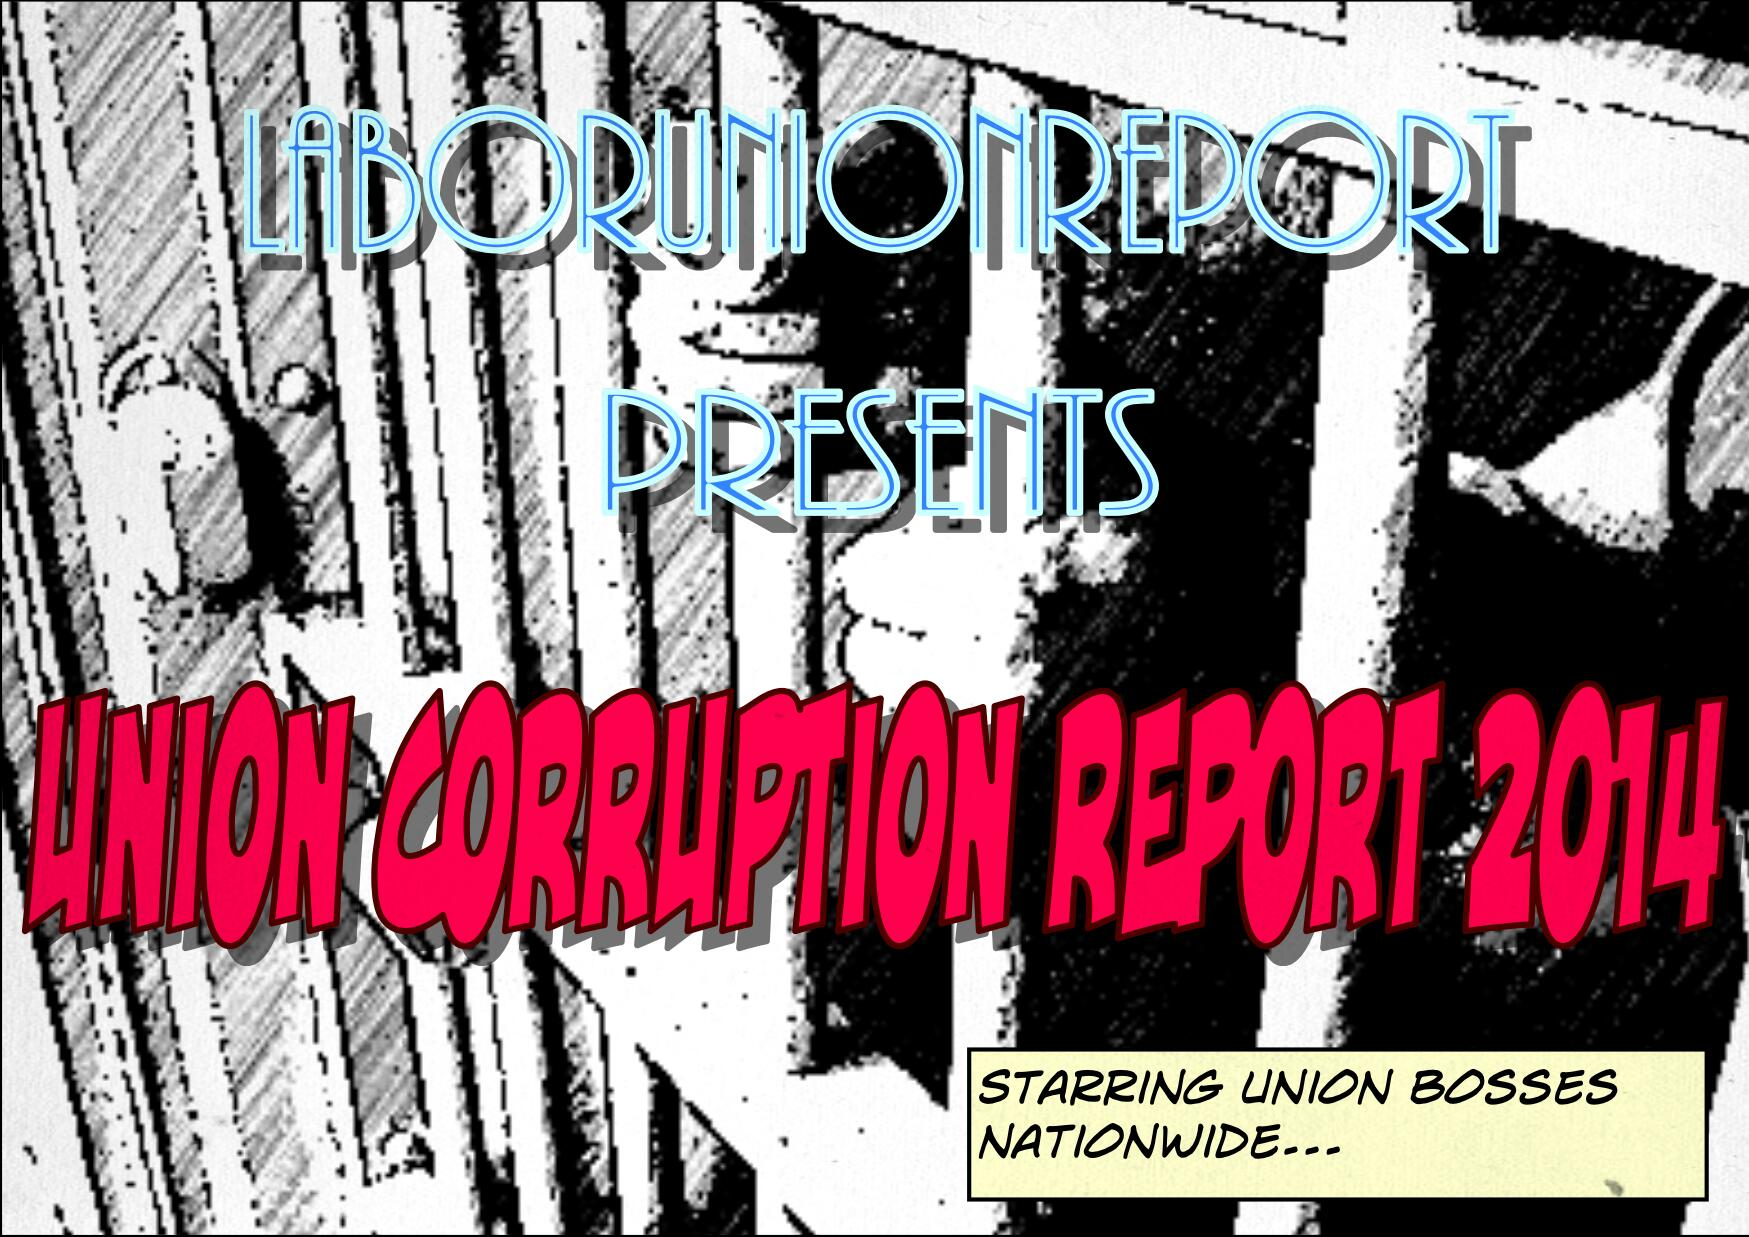 Union Corruption Report: Six Months Worth Of Corrupt Union Bosses & Other Miscreants